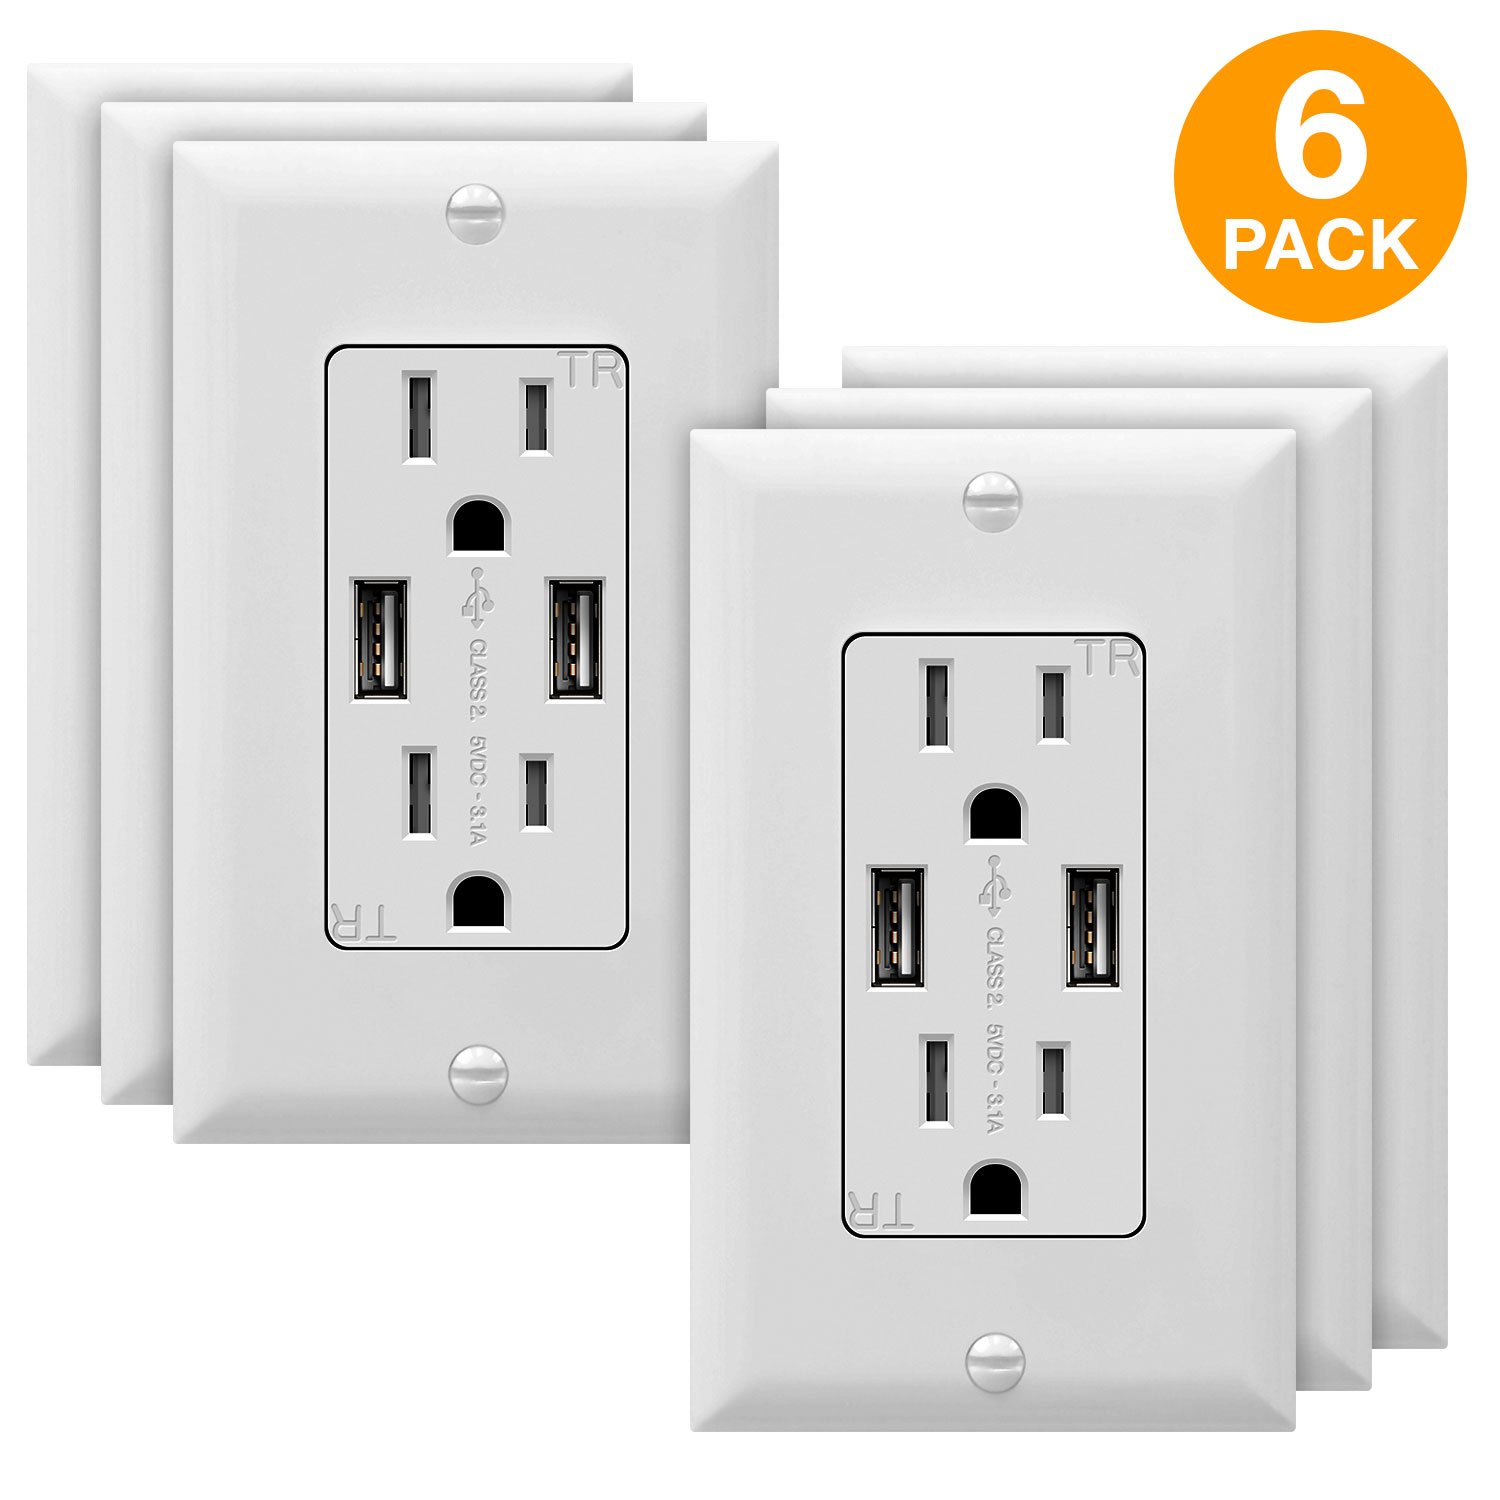 TOPGREENER TU2153A USB Outlets, 3.1A USB Outlet, USB Wall Outlet, USB Charger Outlet, Dual USB Charger with 15A Tamper Resistant Duplex Receptacle, 6-Pack, White